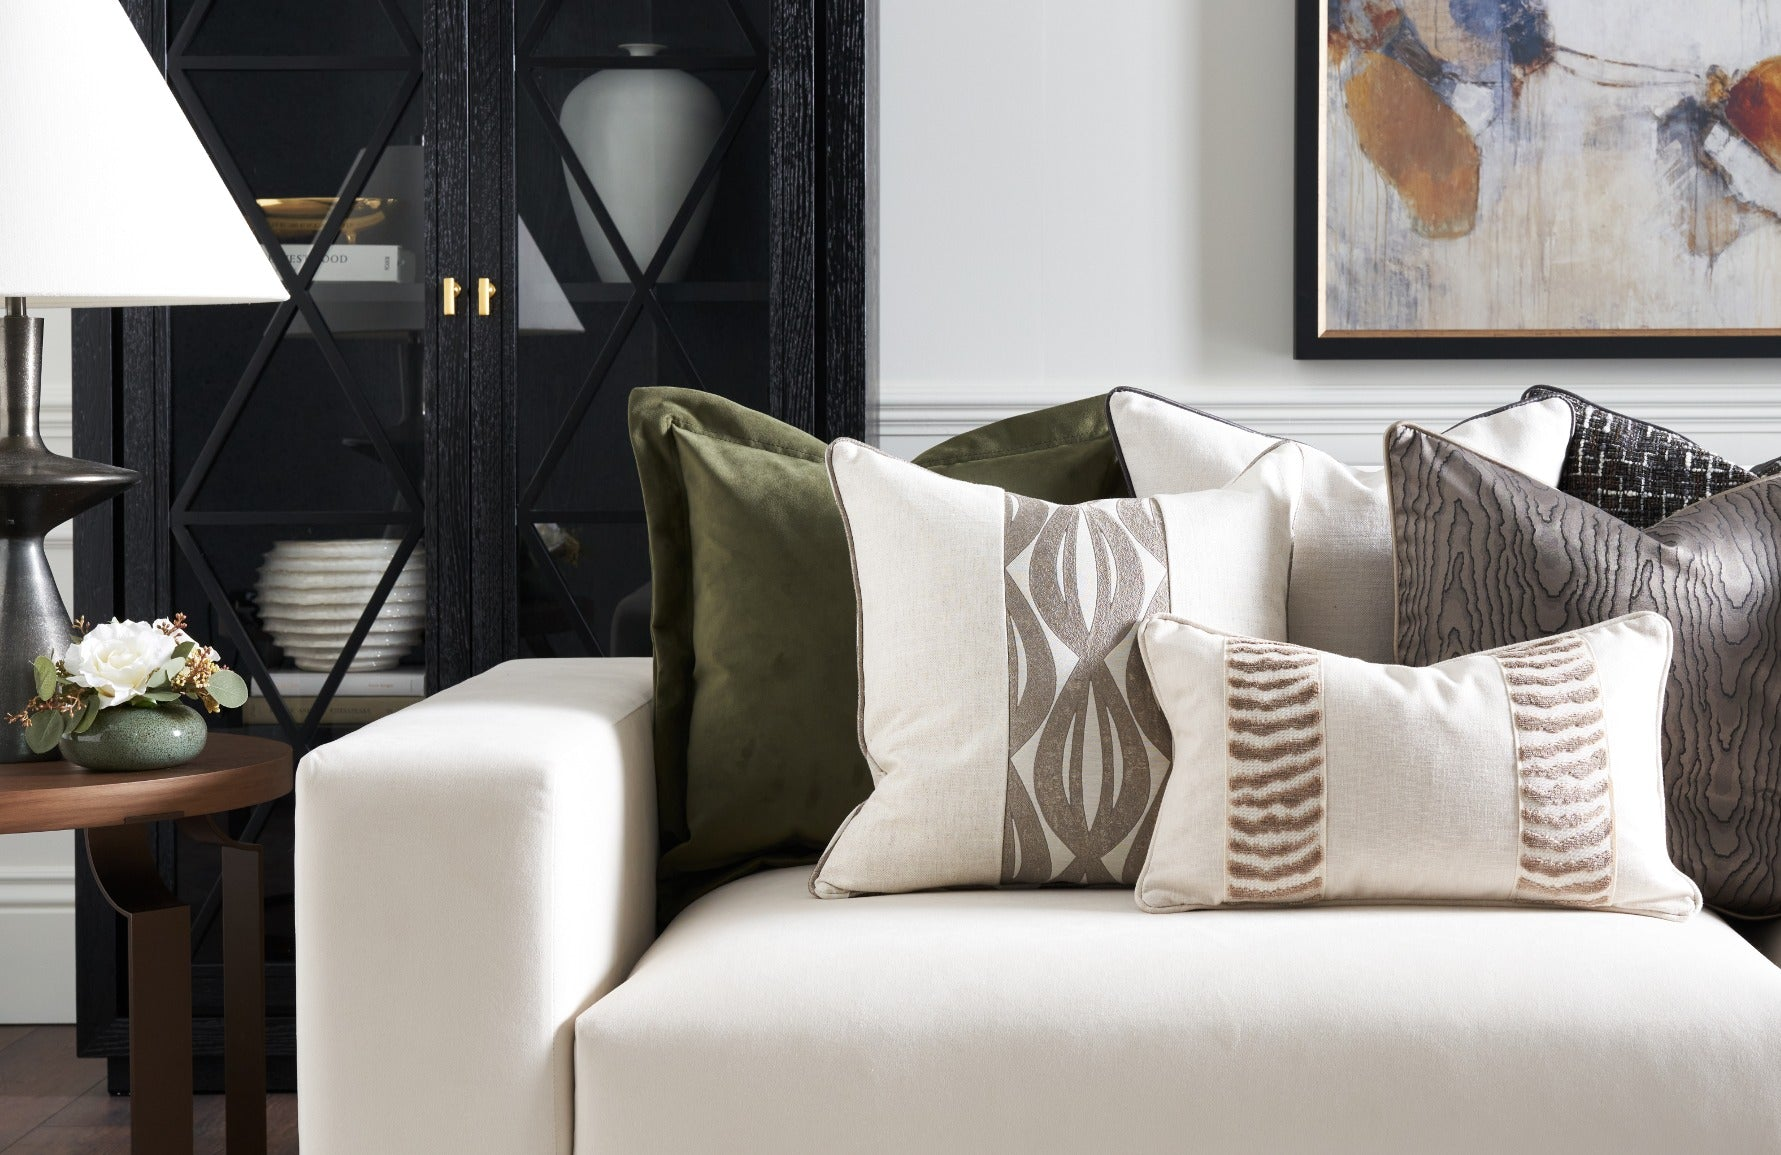 How To Choose The Perfect Cushions For Your Sofa | LuxDeco.com